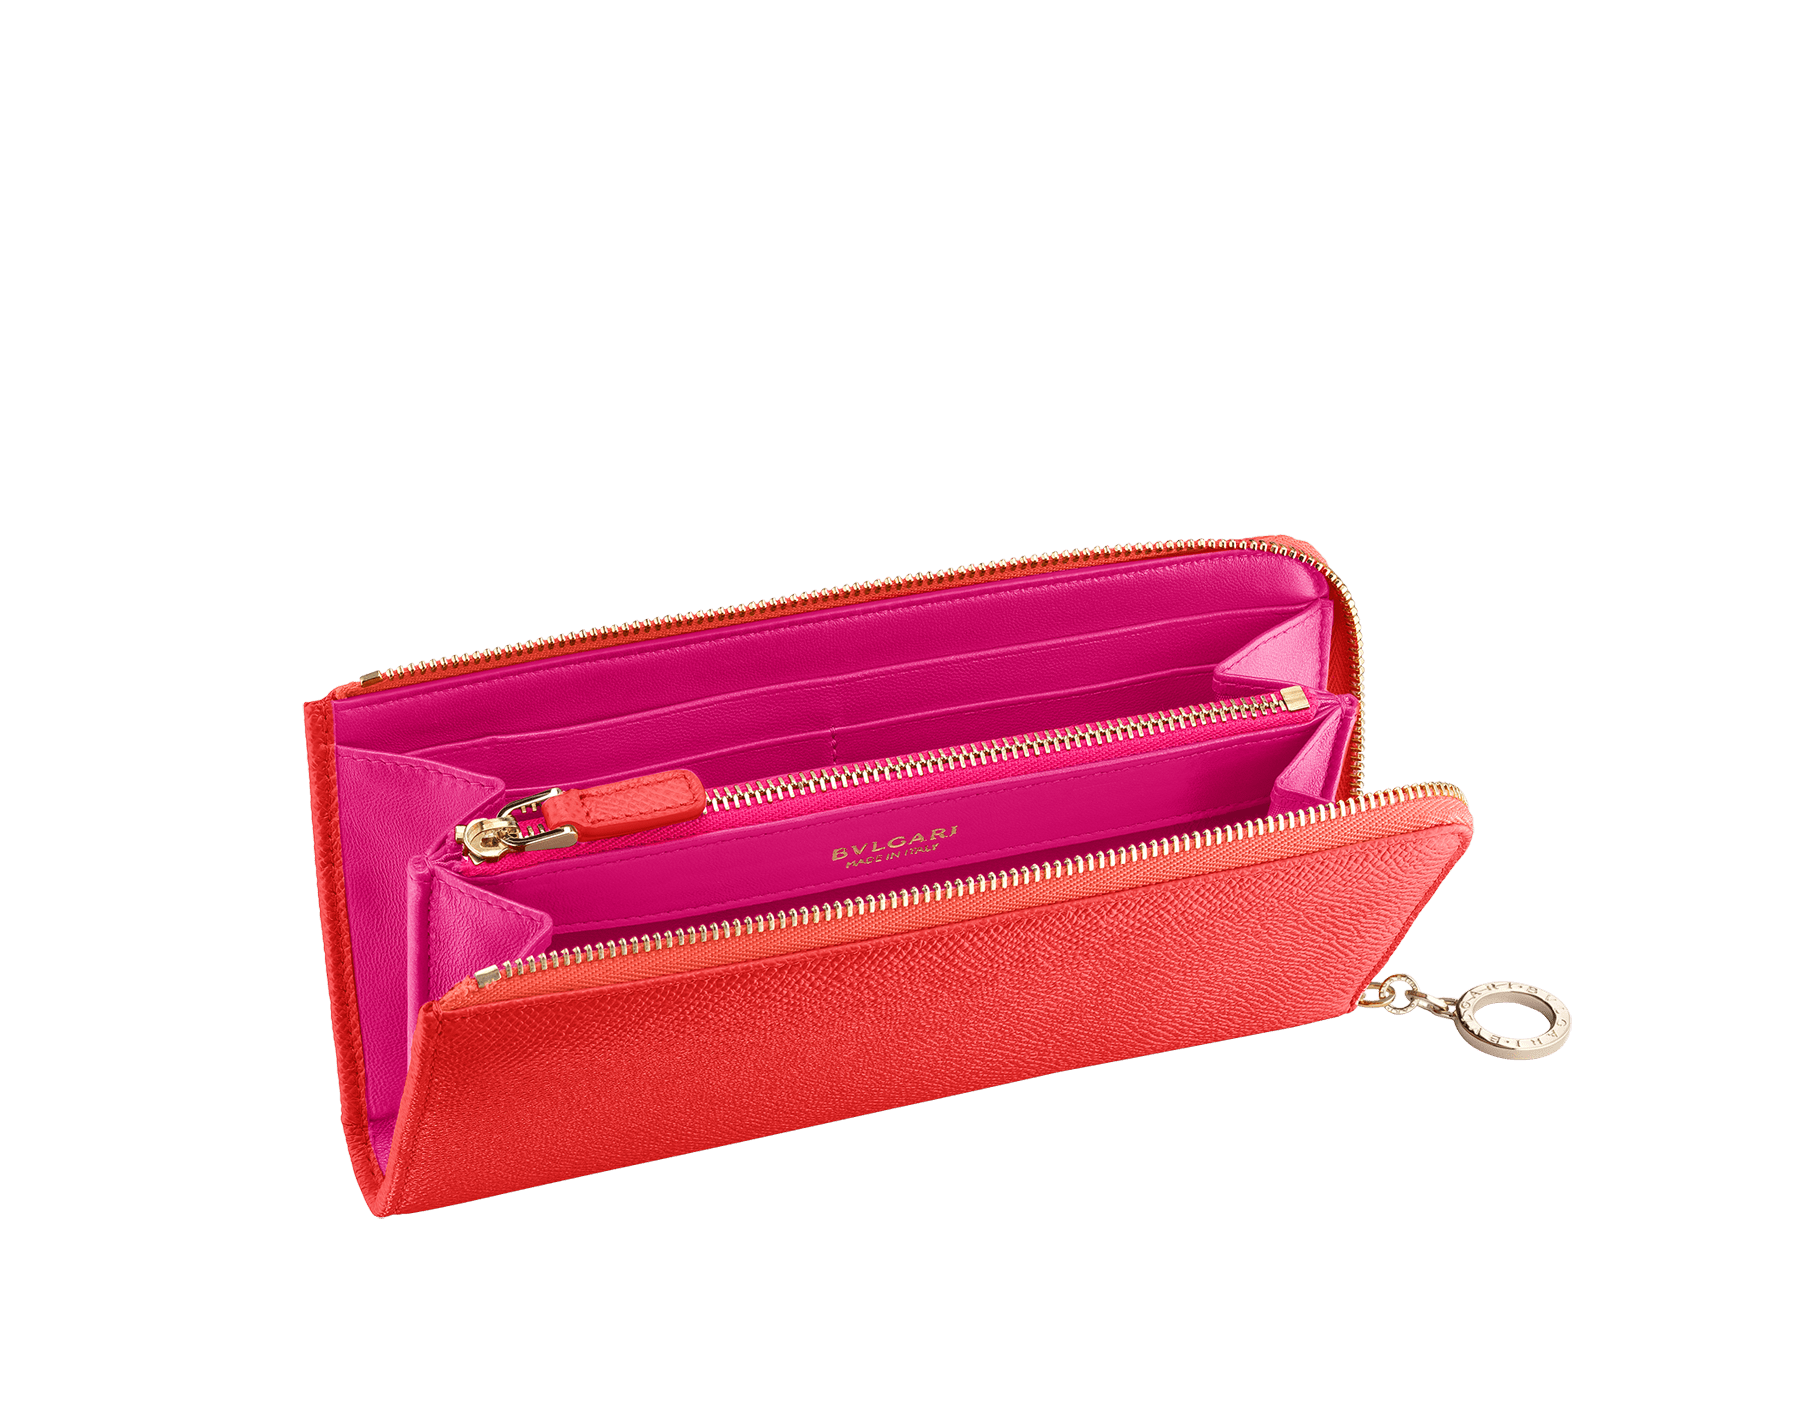 BVLGARI BVLGARI L-shaped zipped wallet in sea star coral bright grain calf leather and pink spinel nappa. Iconic logo zip puller in light gold plated brass. 288172 image 2